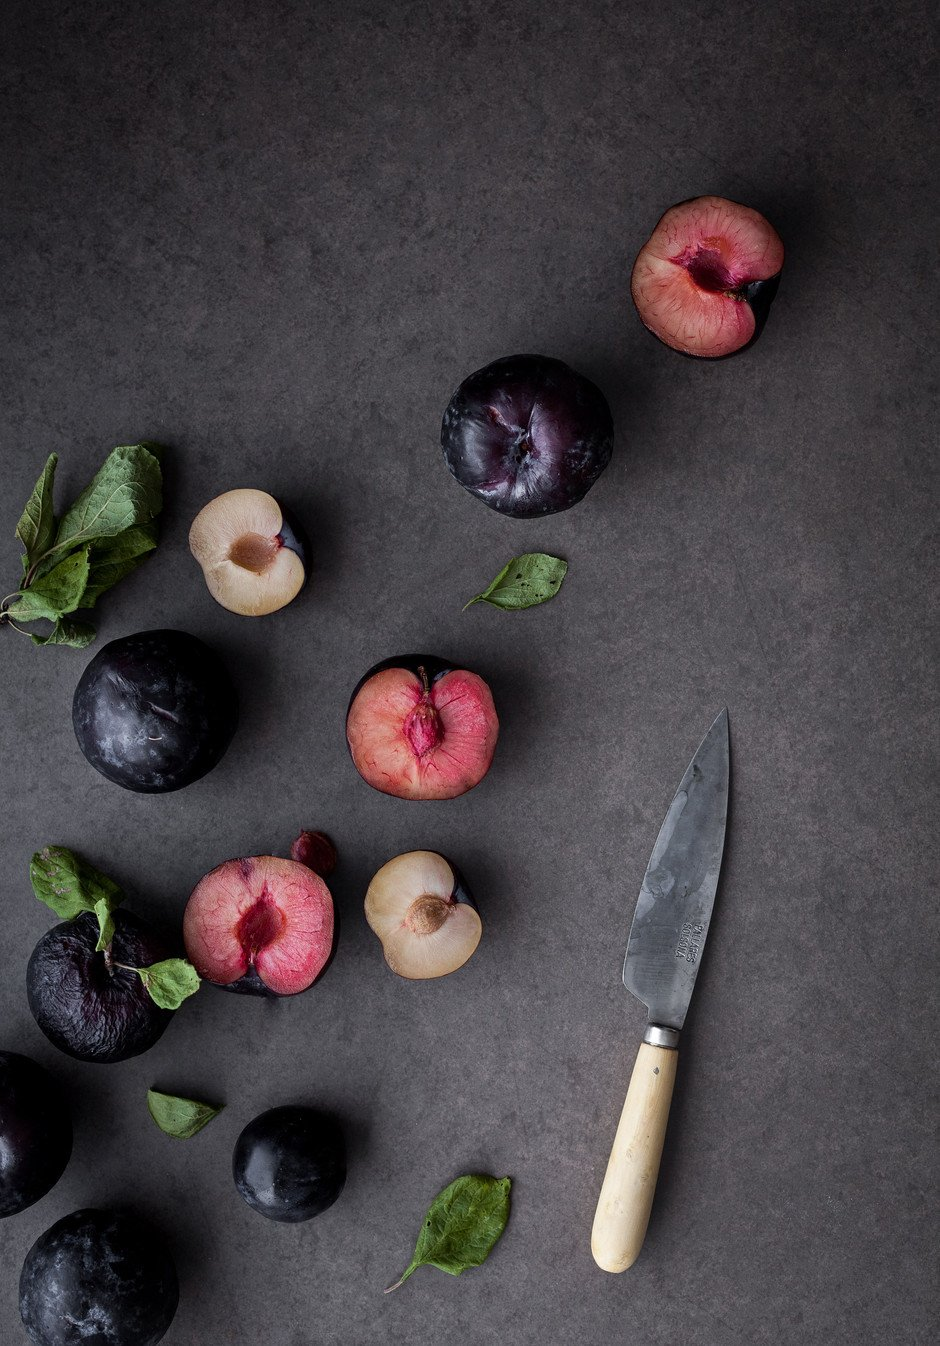 overhead view of sliced plums and leaves and a knife.